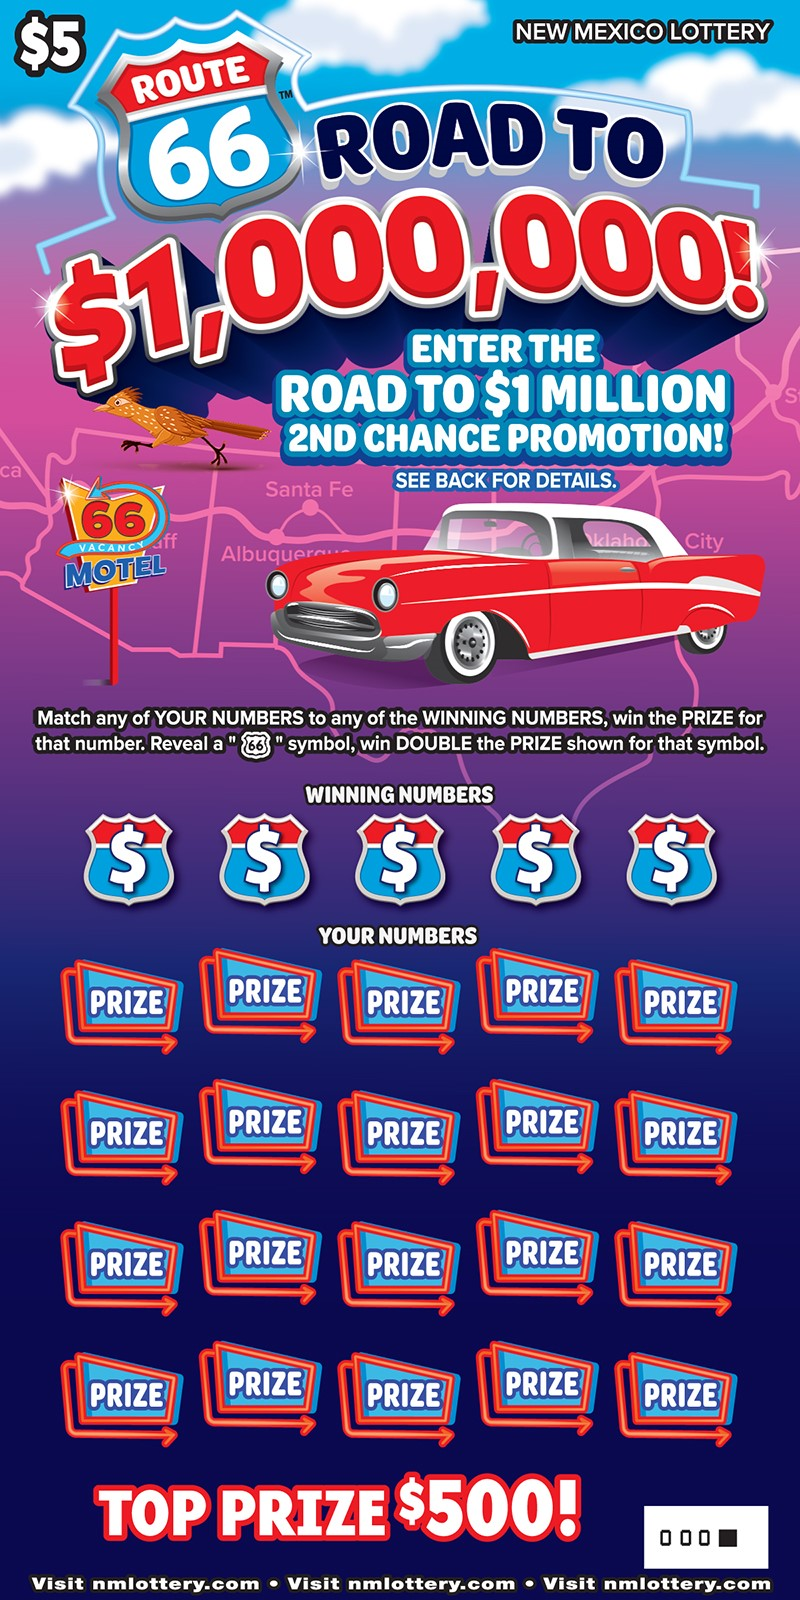 Route 66™ Road to $1,000,000! Scratcher